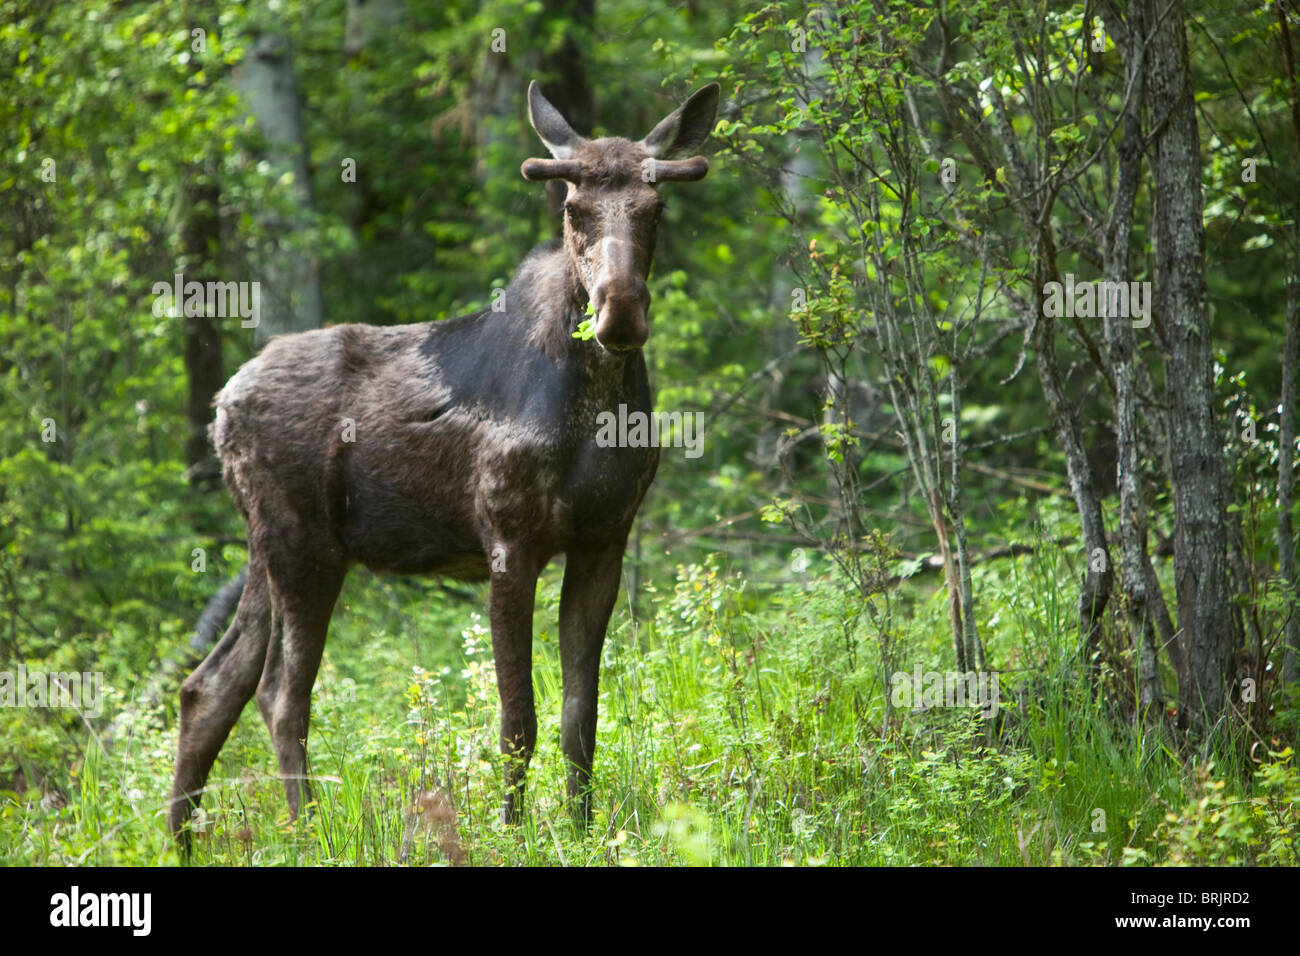 A bull moose stands in a lush forest in Idaho. Stock Photo